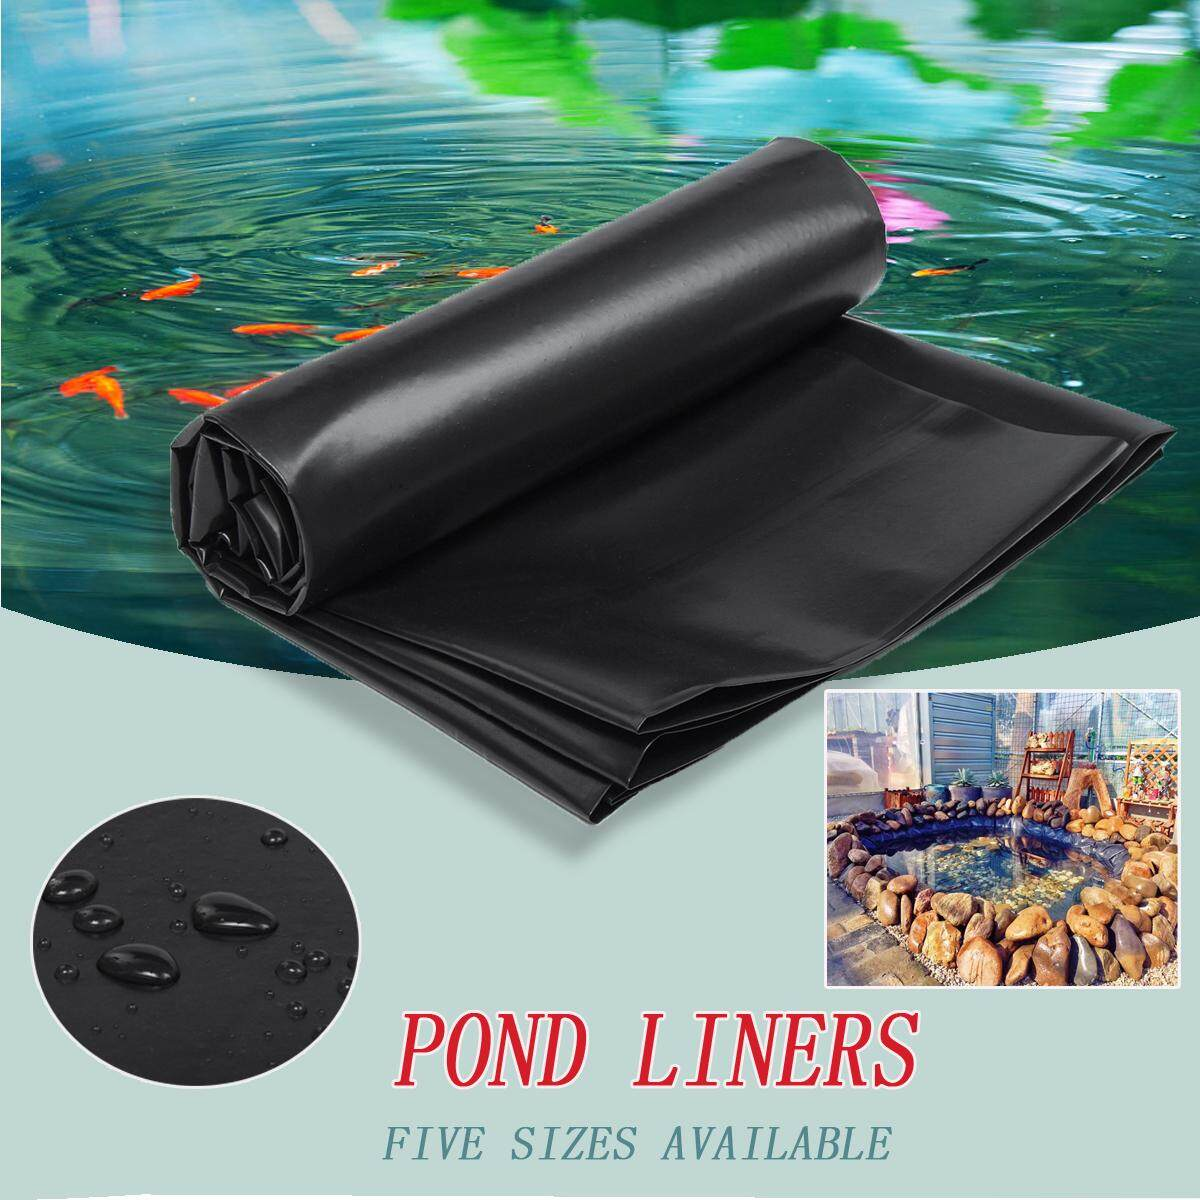 Fish Pond Liner Gardens Pools HDPE Membrane Reinforced Landscaping 0.3MM 3.5X5M